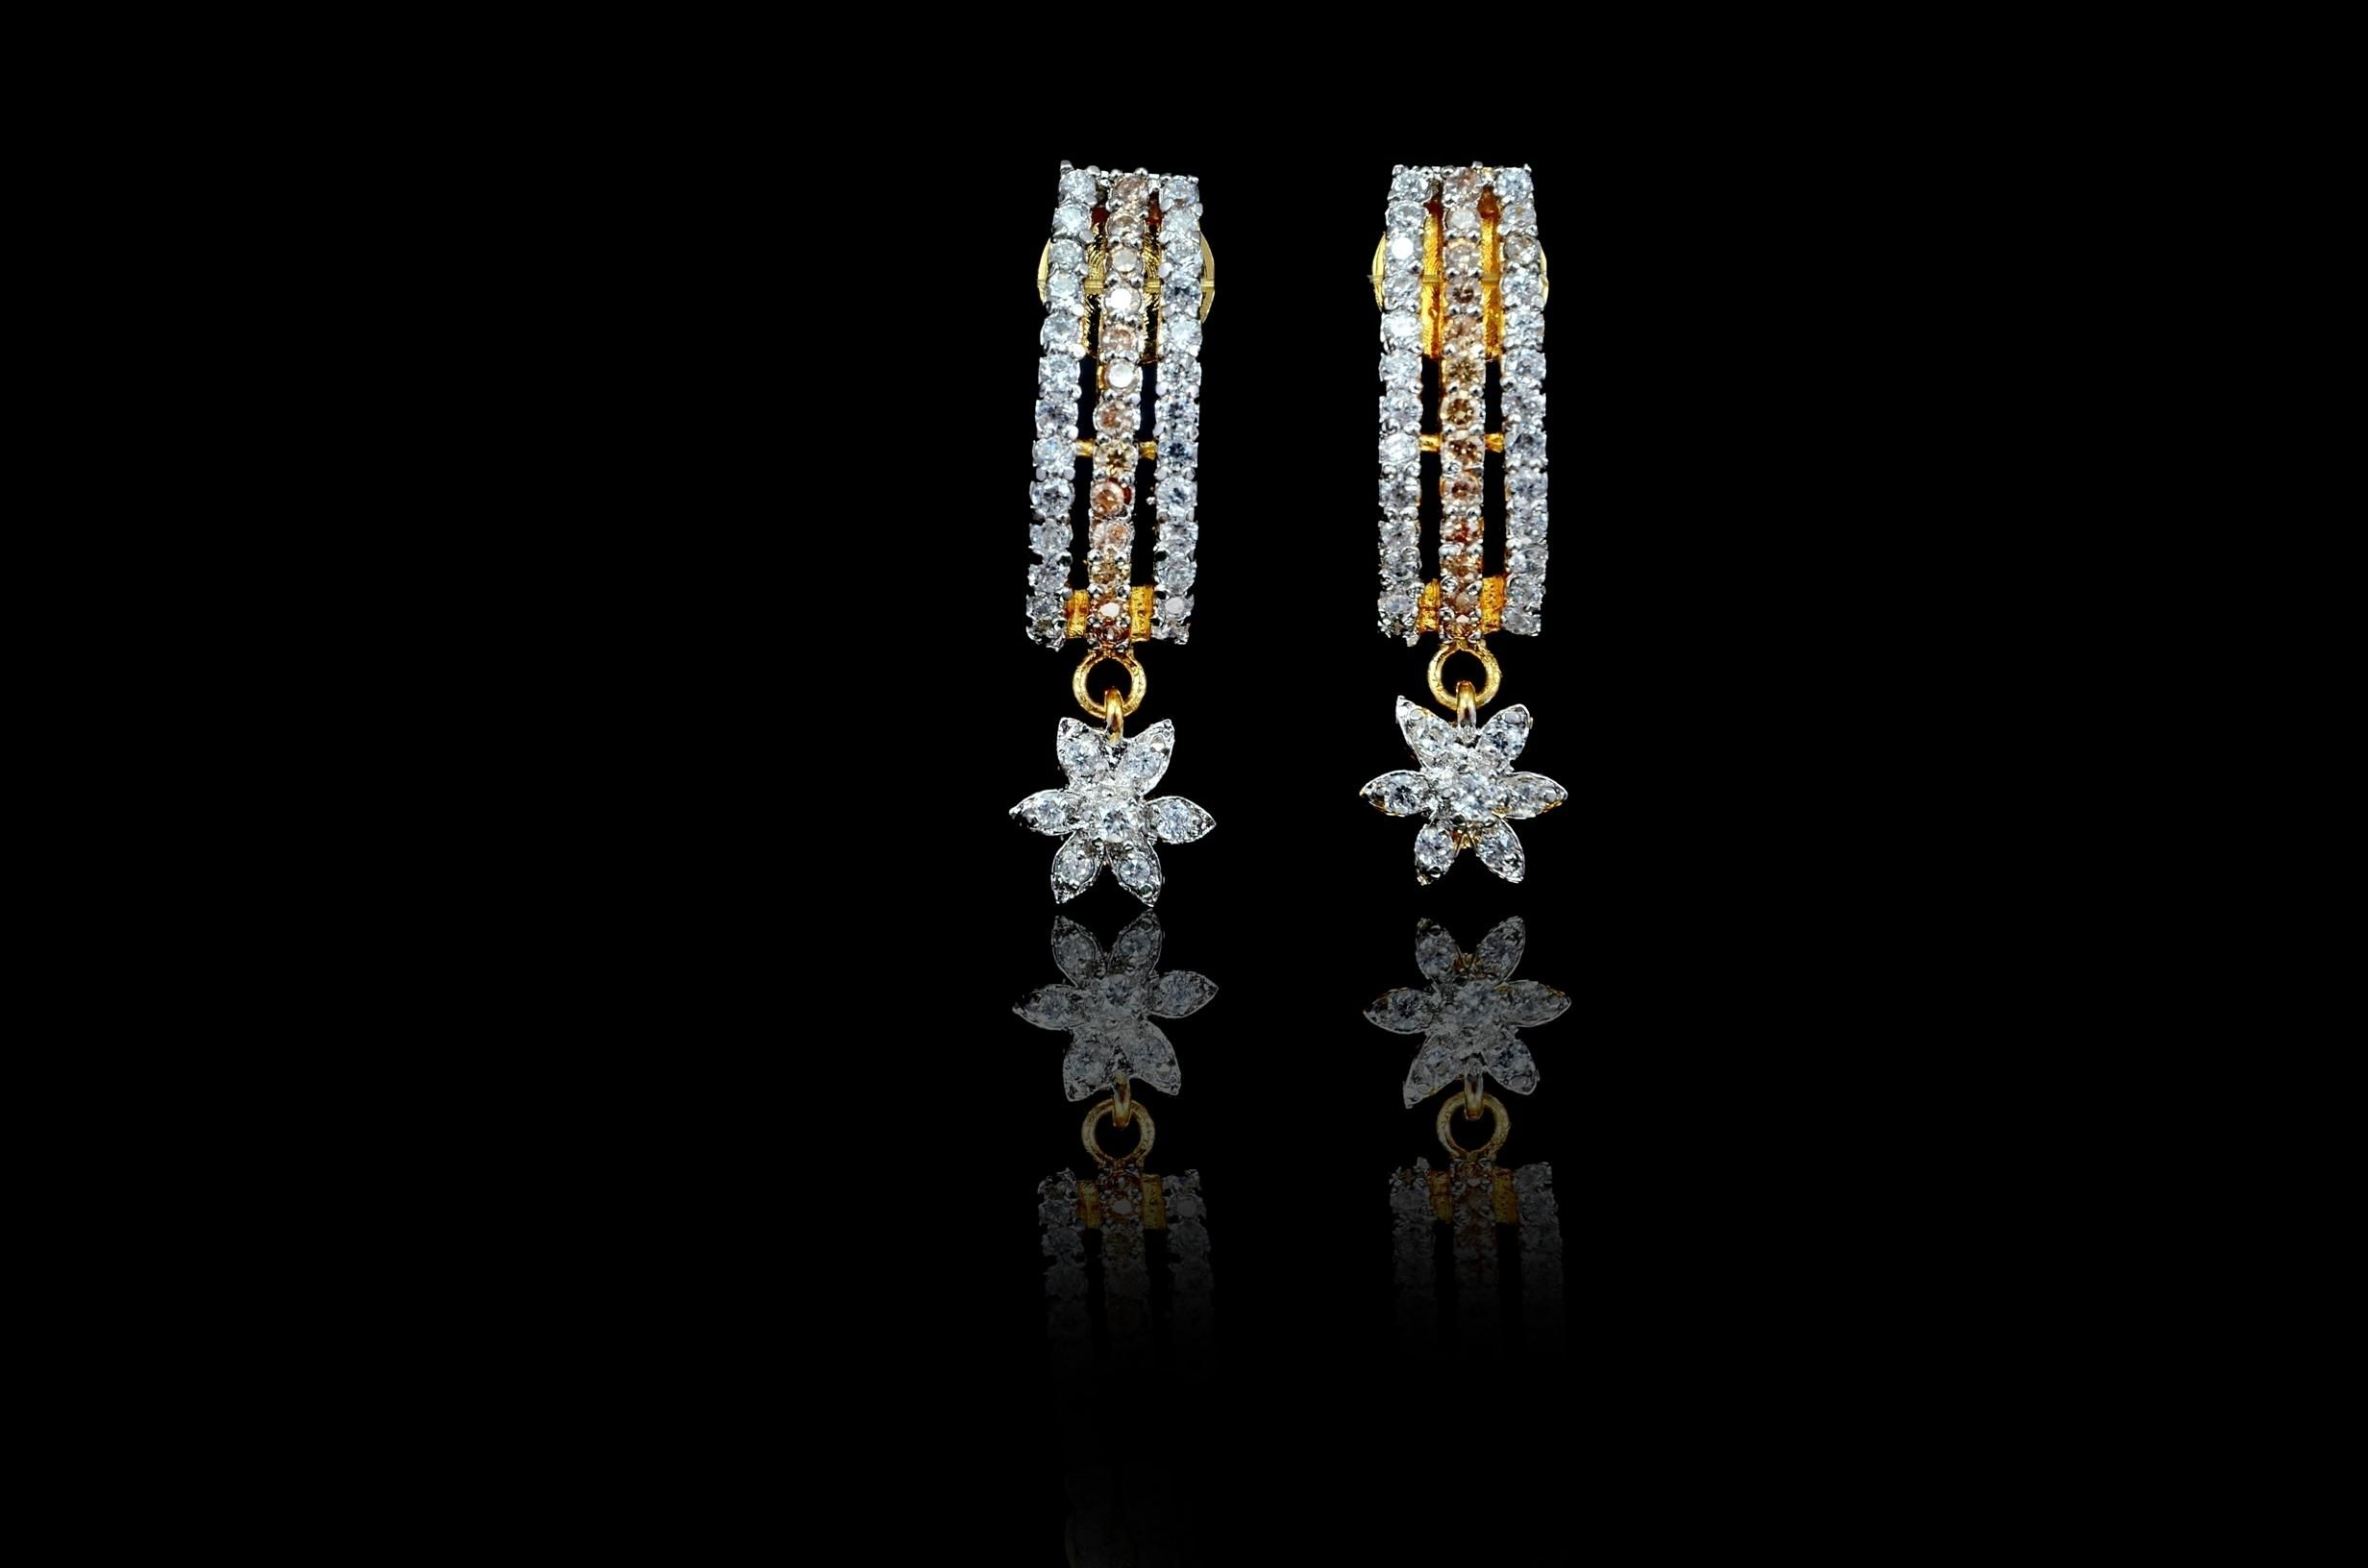 blog diamond earrings jewelry traditional american wholesale in india wedding indian jewellery